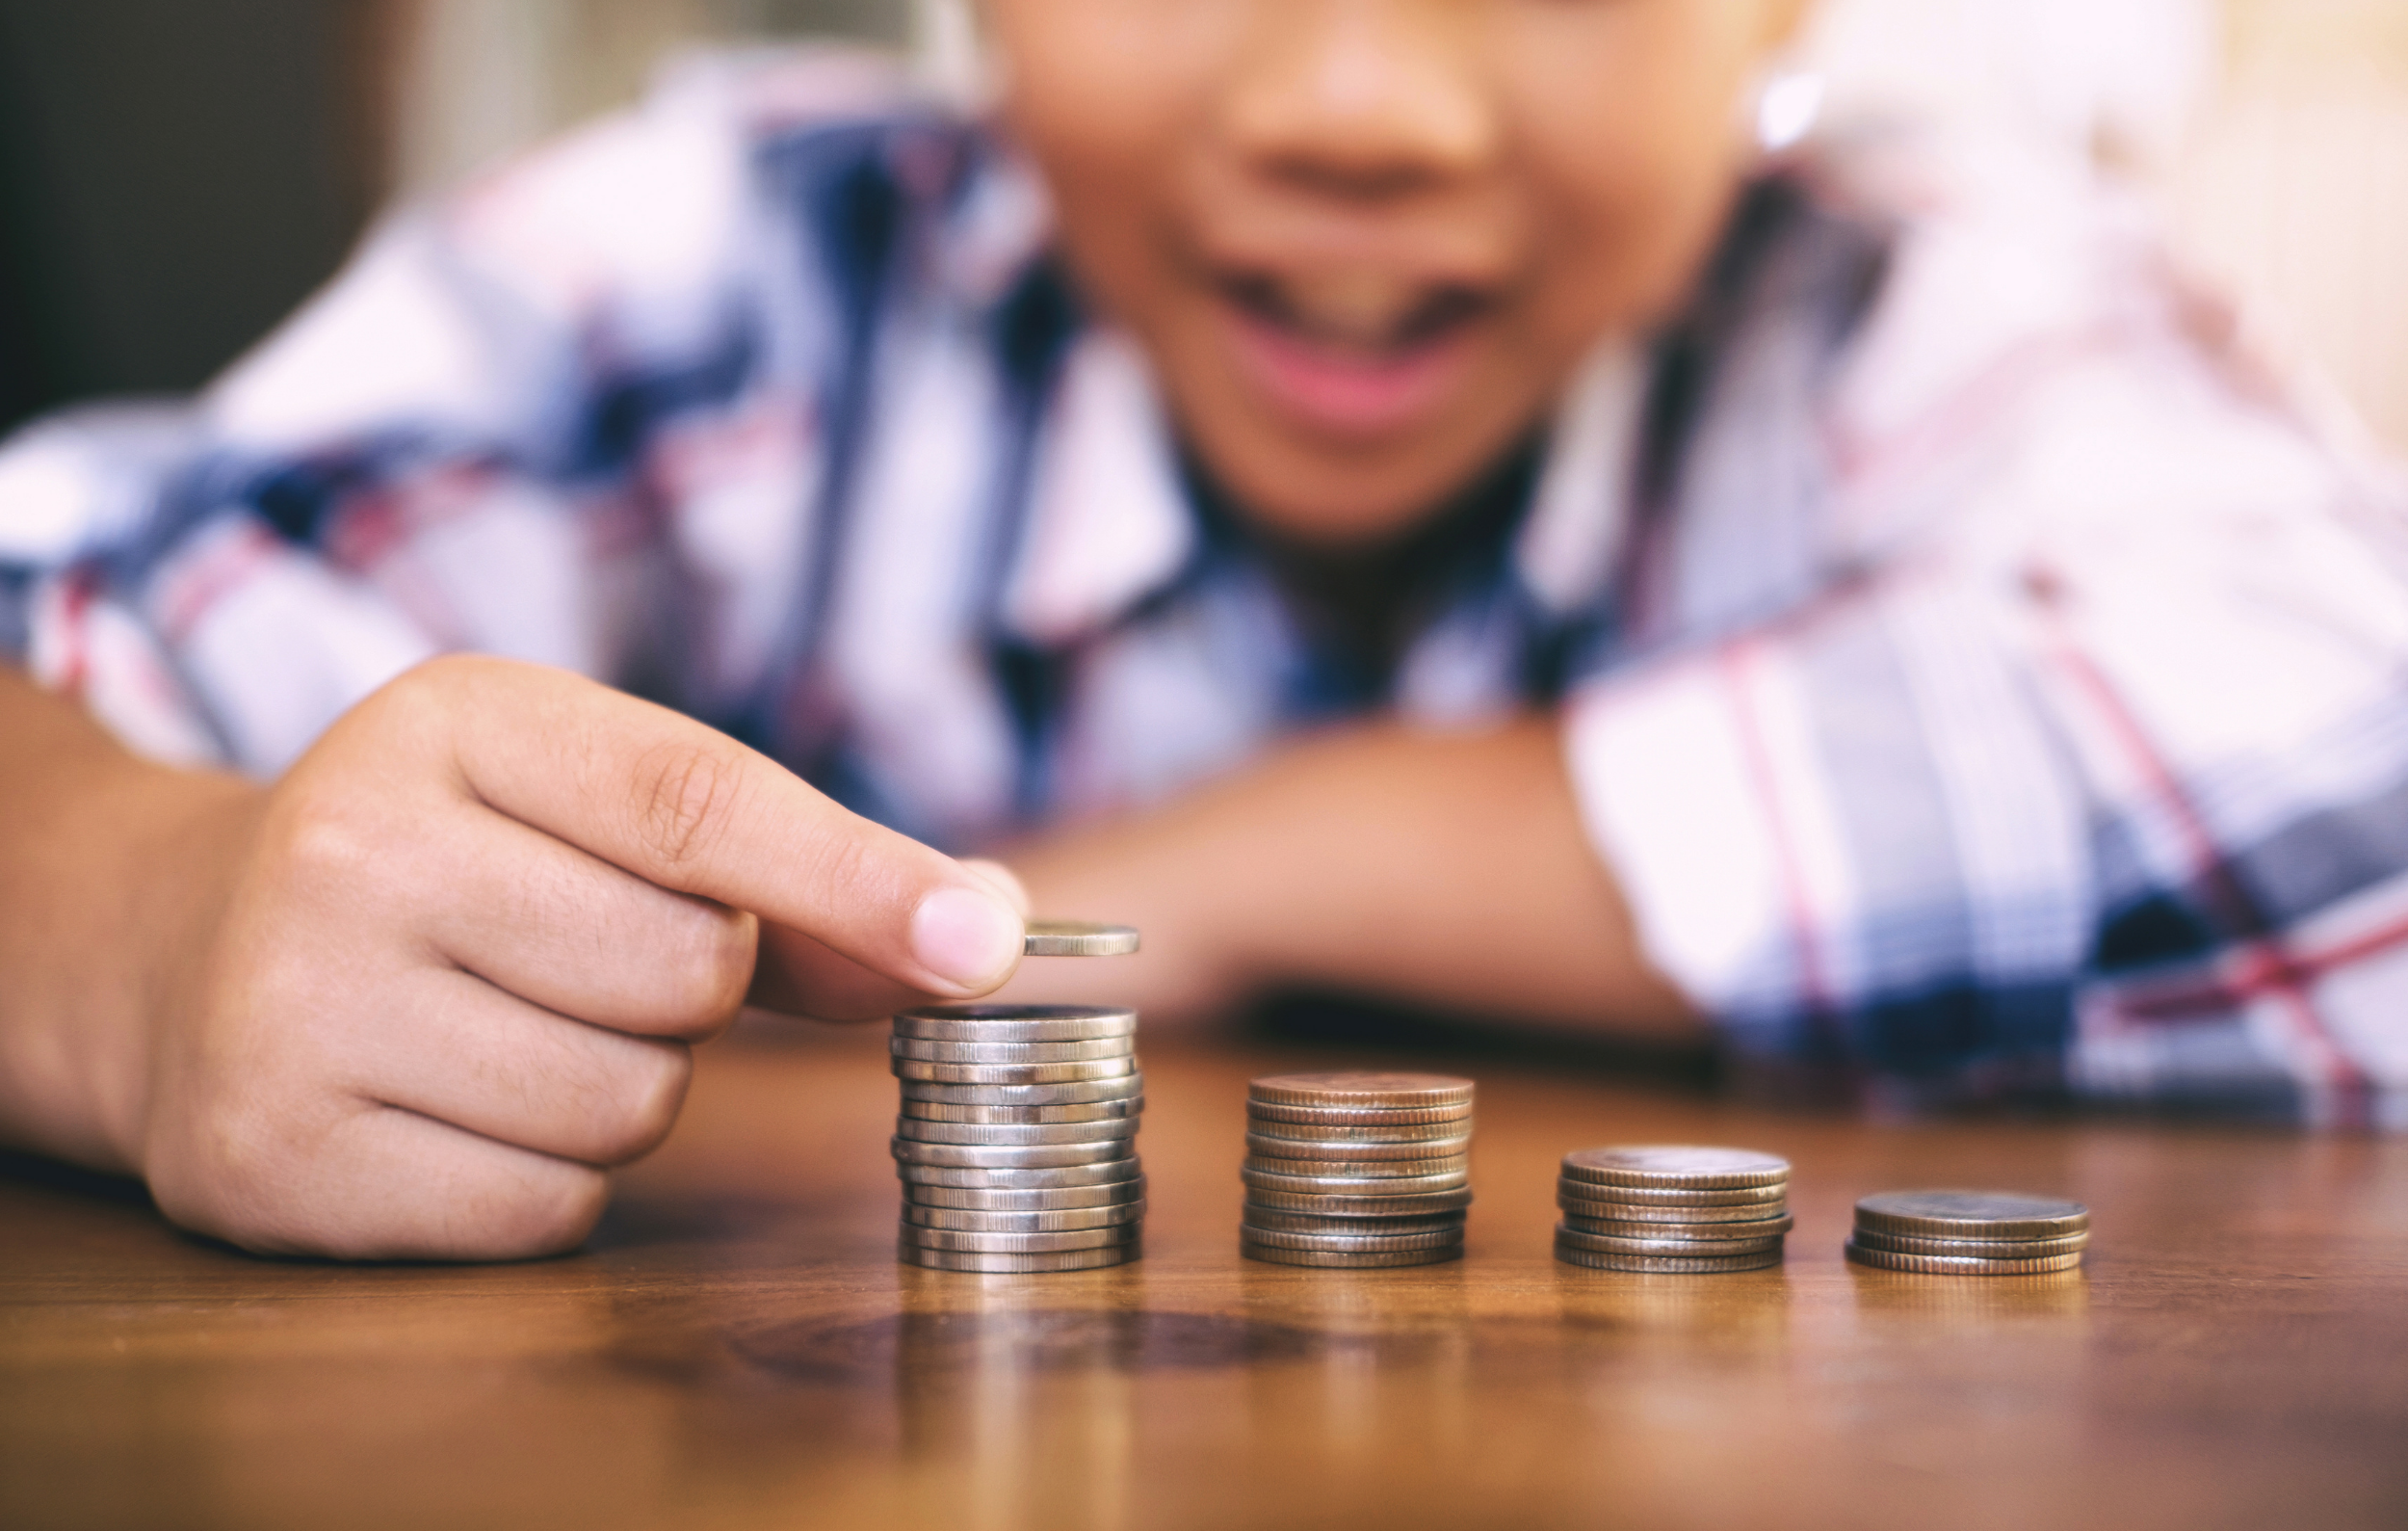 It's Allowance Day - Child counting out coins on the table in front of him